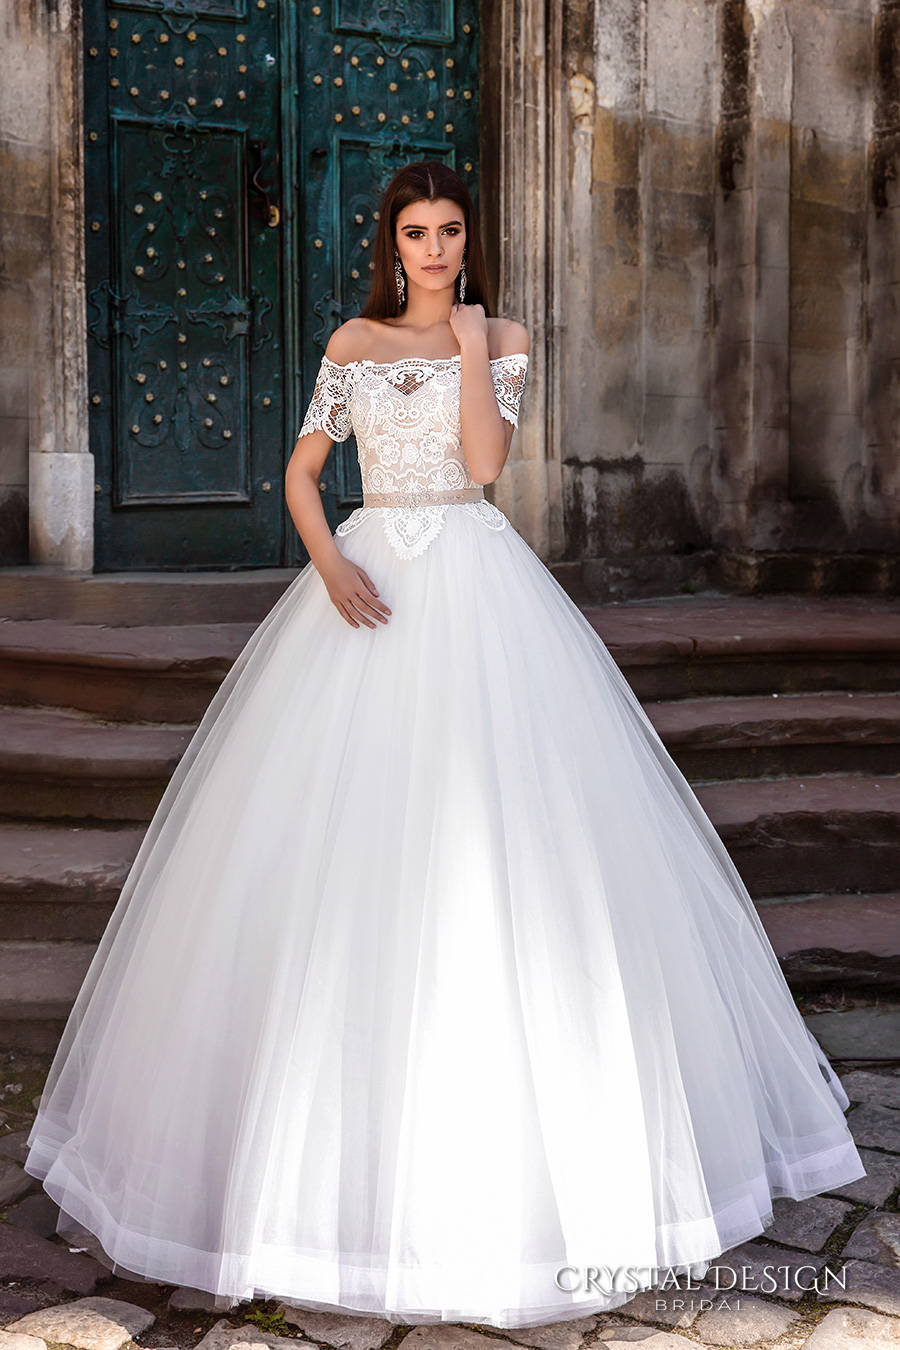 Trubridal Wedding Blog | Crystal Design 2016 Wedding Dresses ...